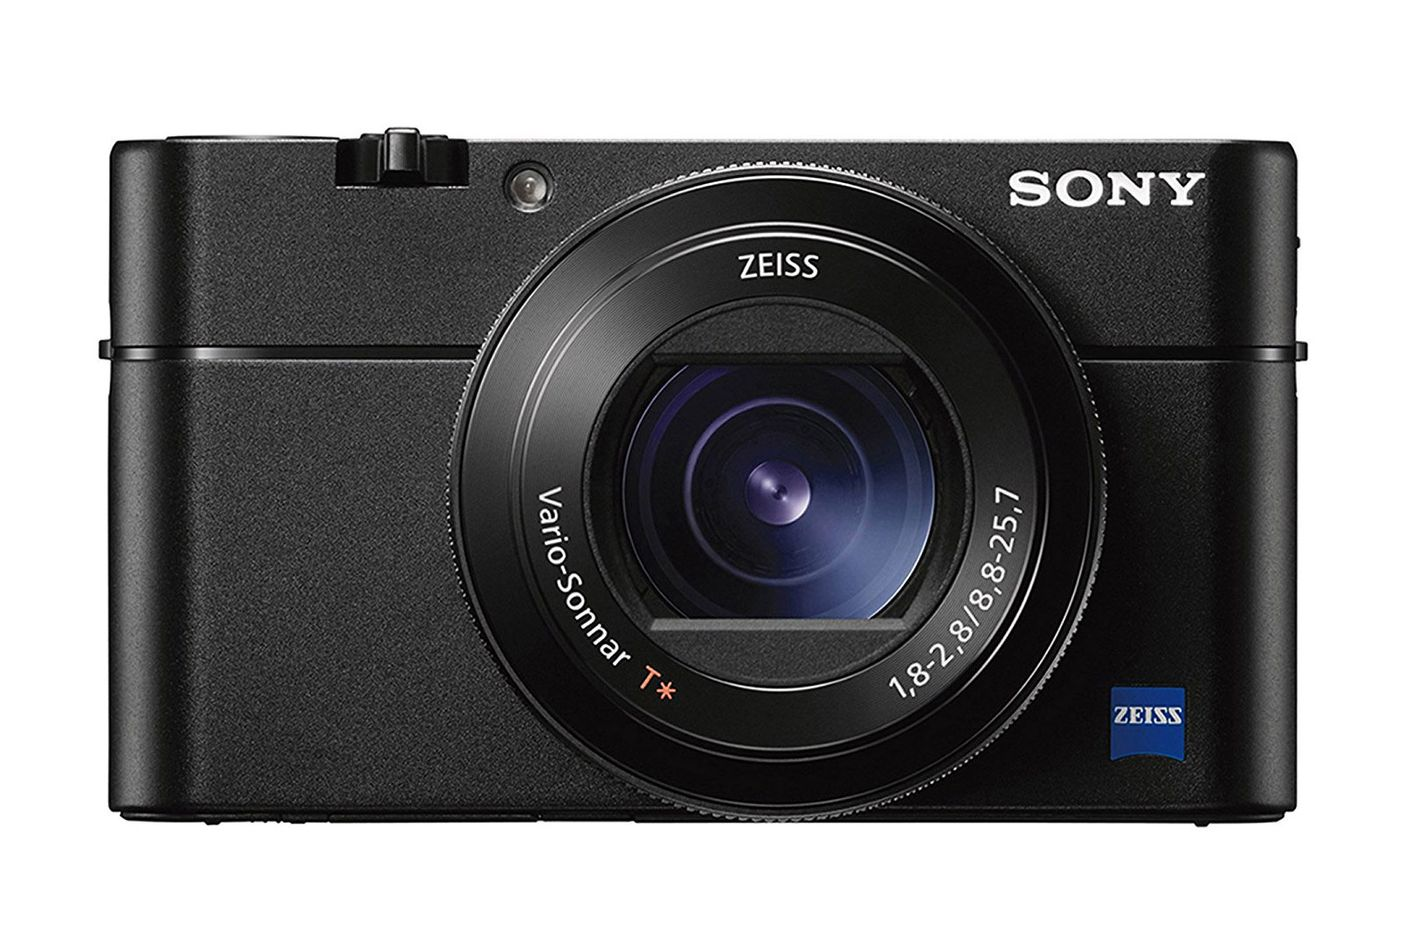 sony cyber shot dsc rx100 v 201 mp digital camera - Christmas Ideas For College Students